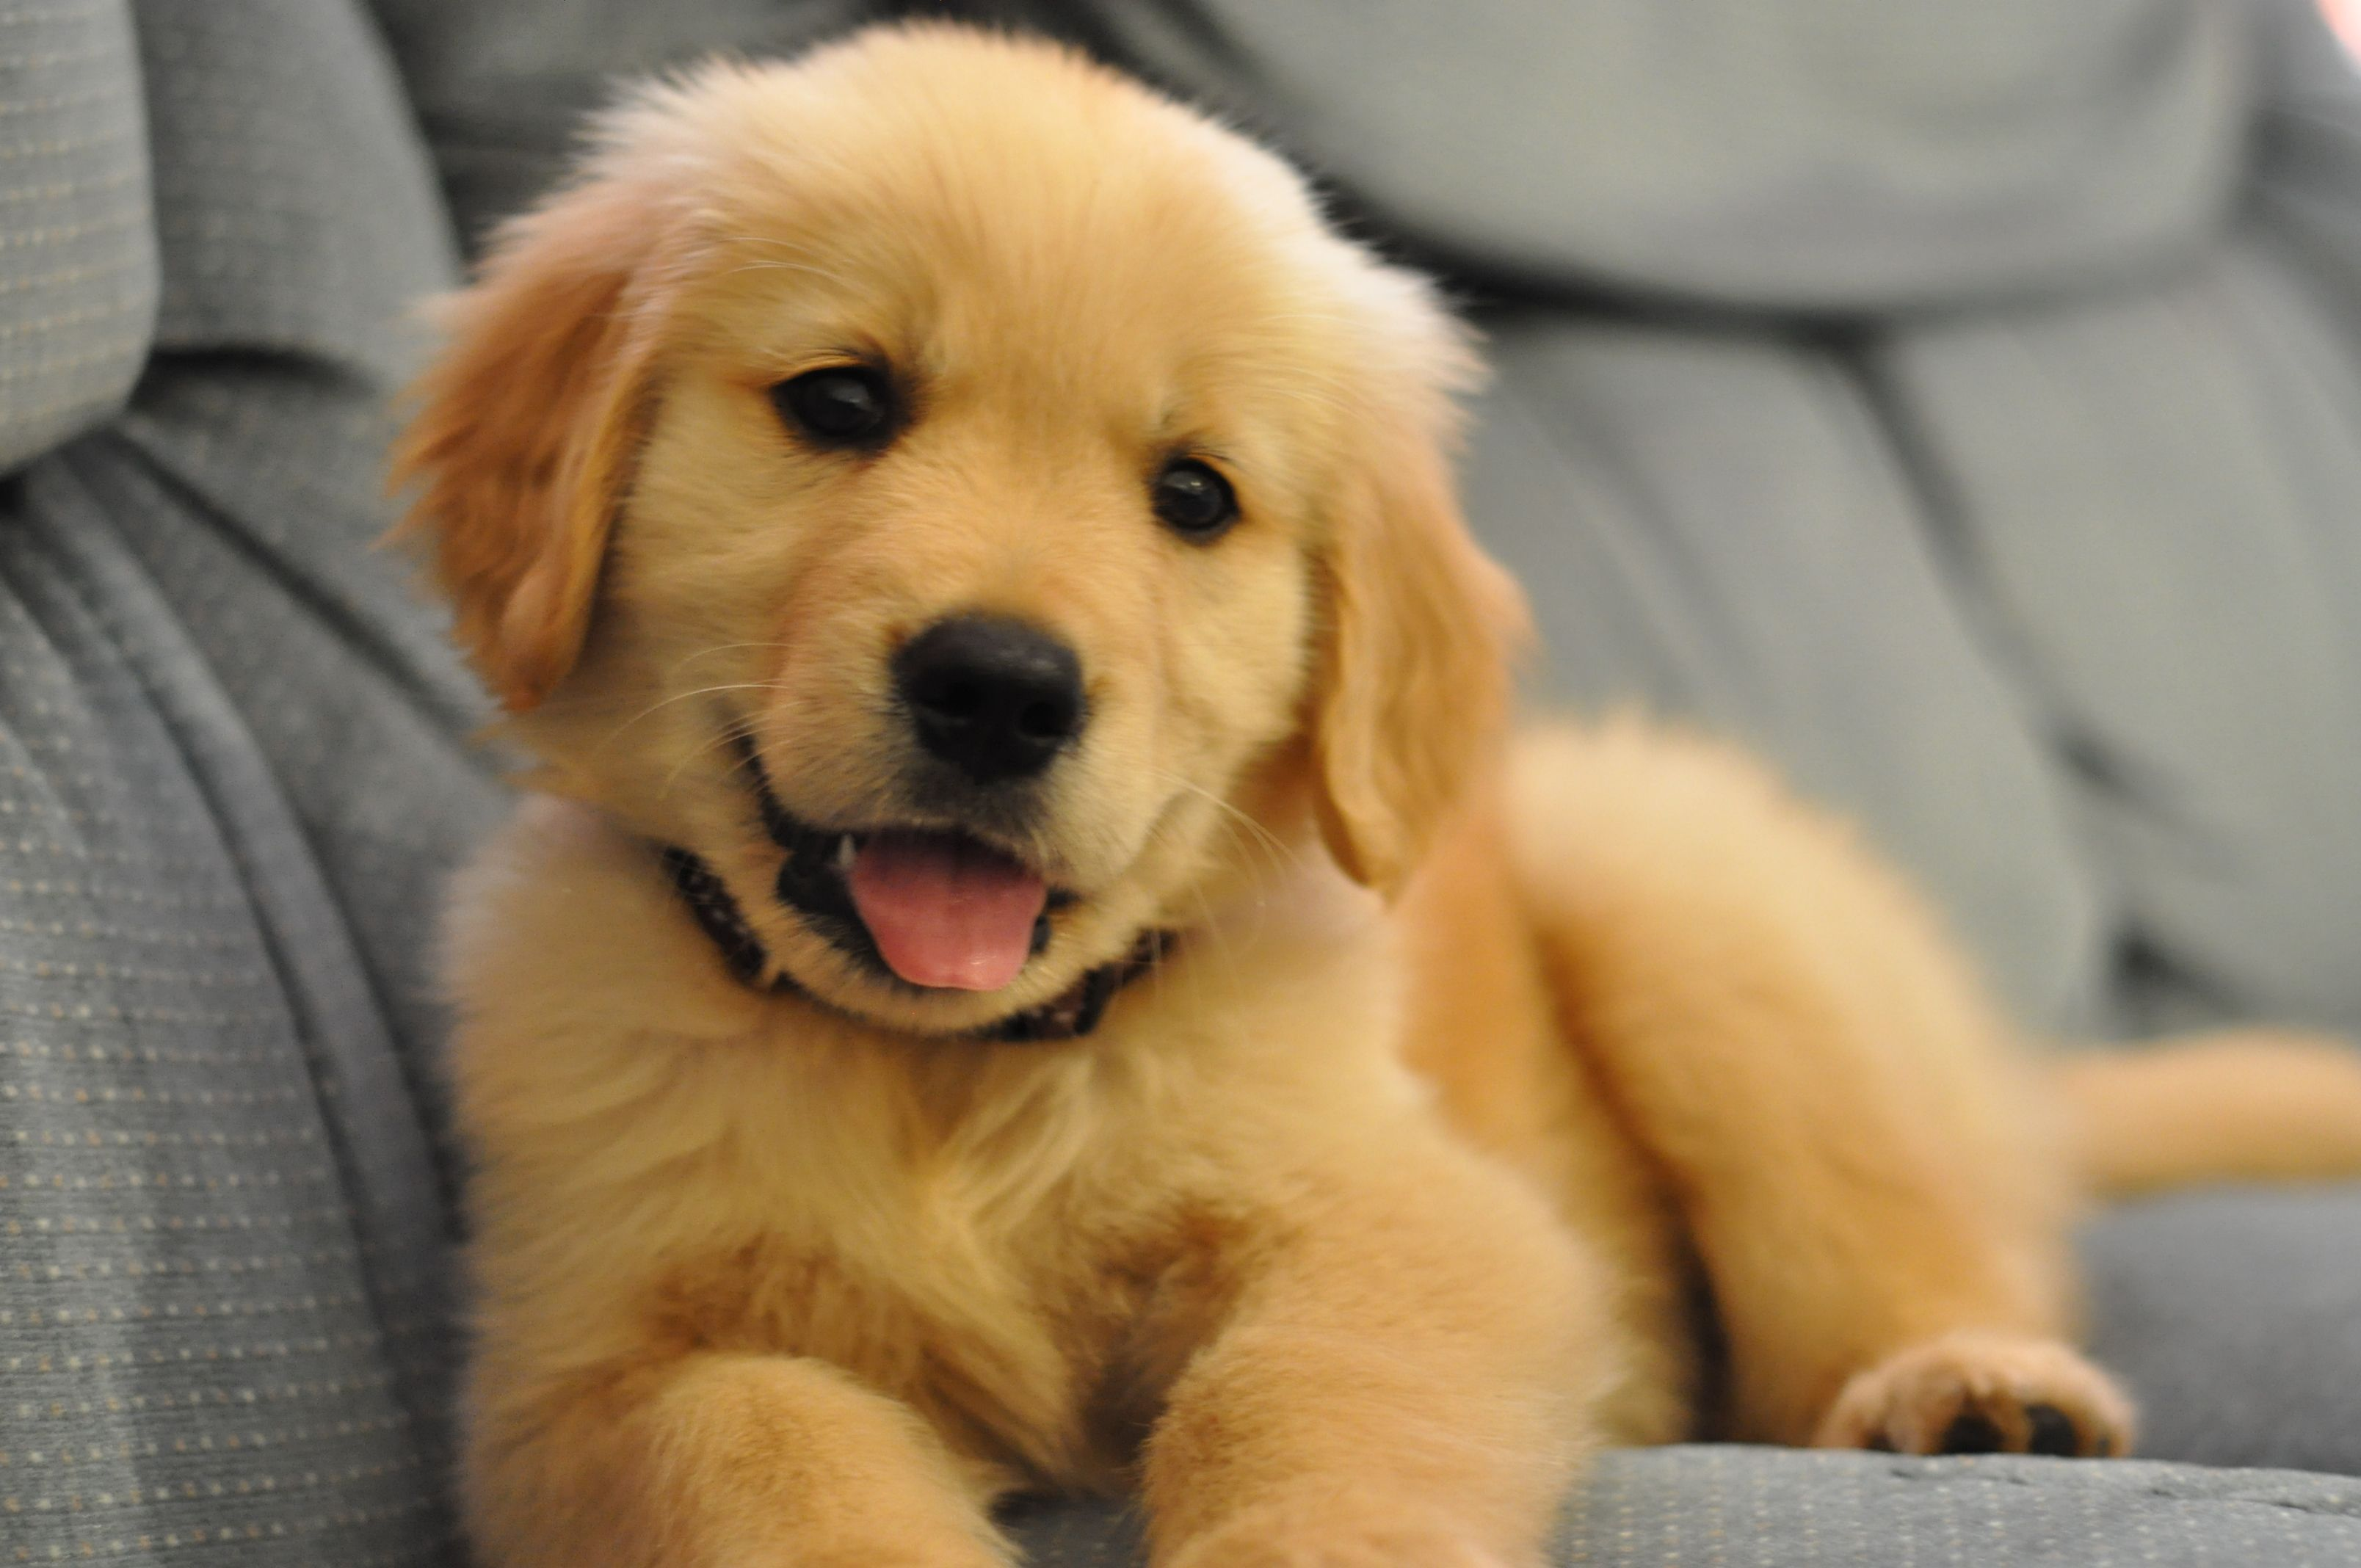 Cutest Golden Retriever Baby Pic Puppies Cute Puppy Videos